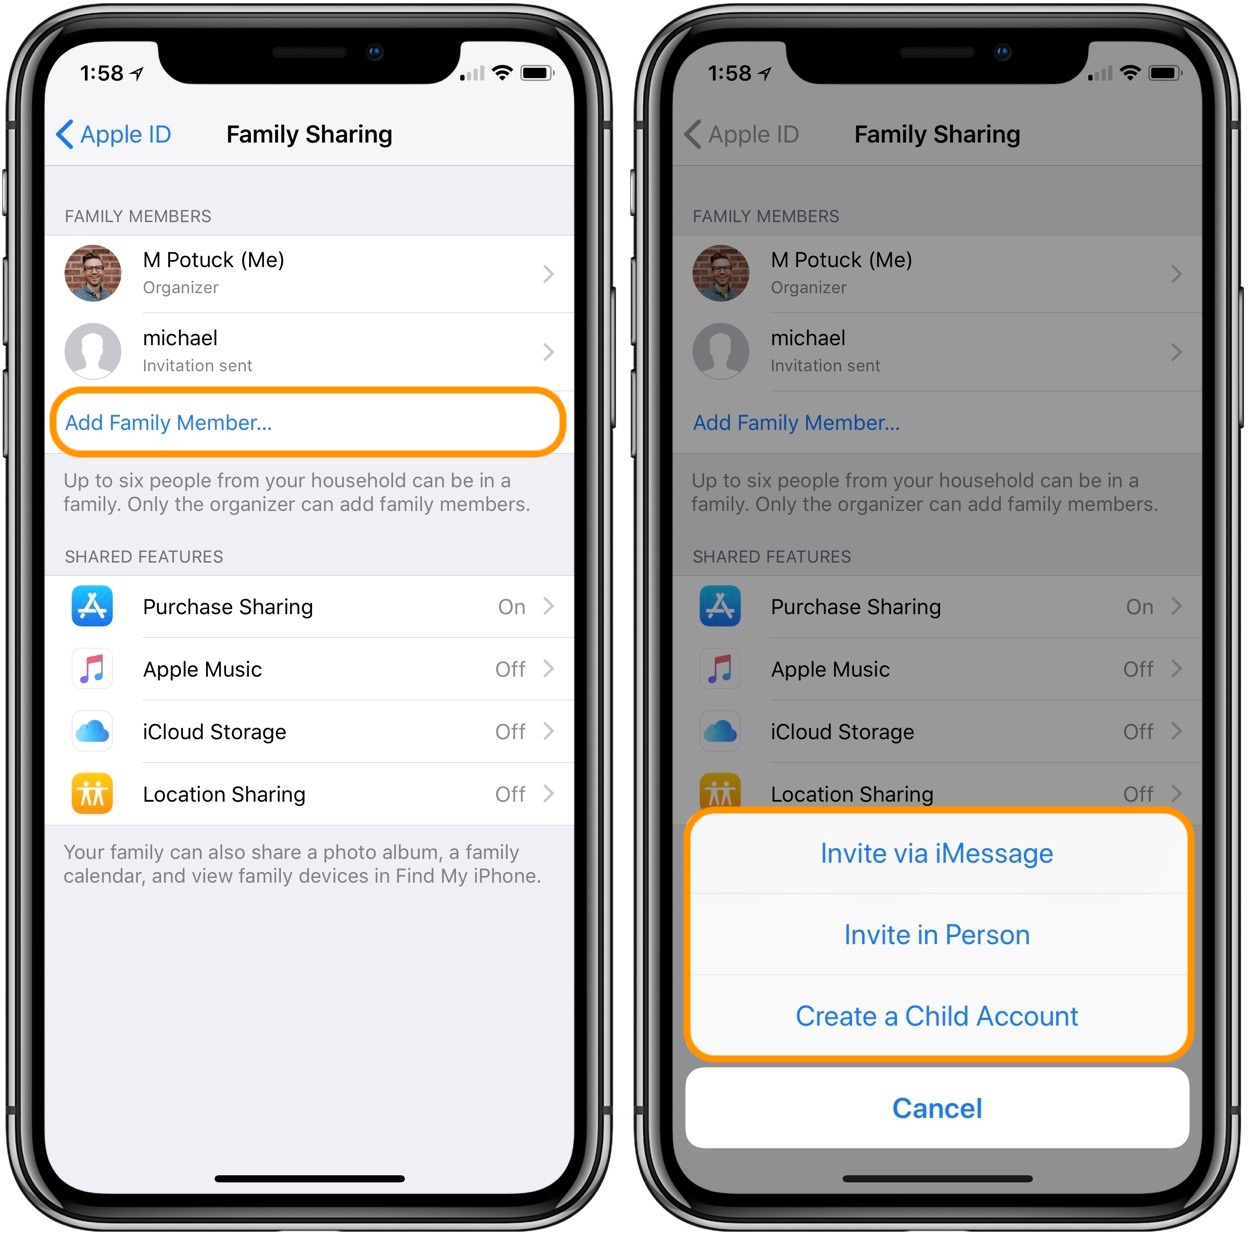 How to set up Family Sharing and create a child's Apple ID